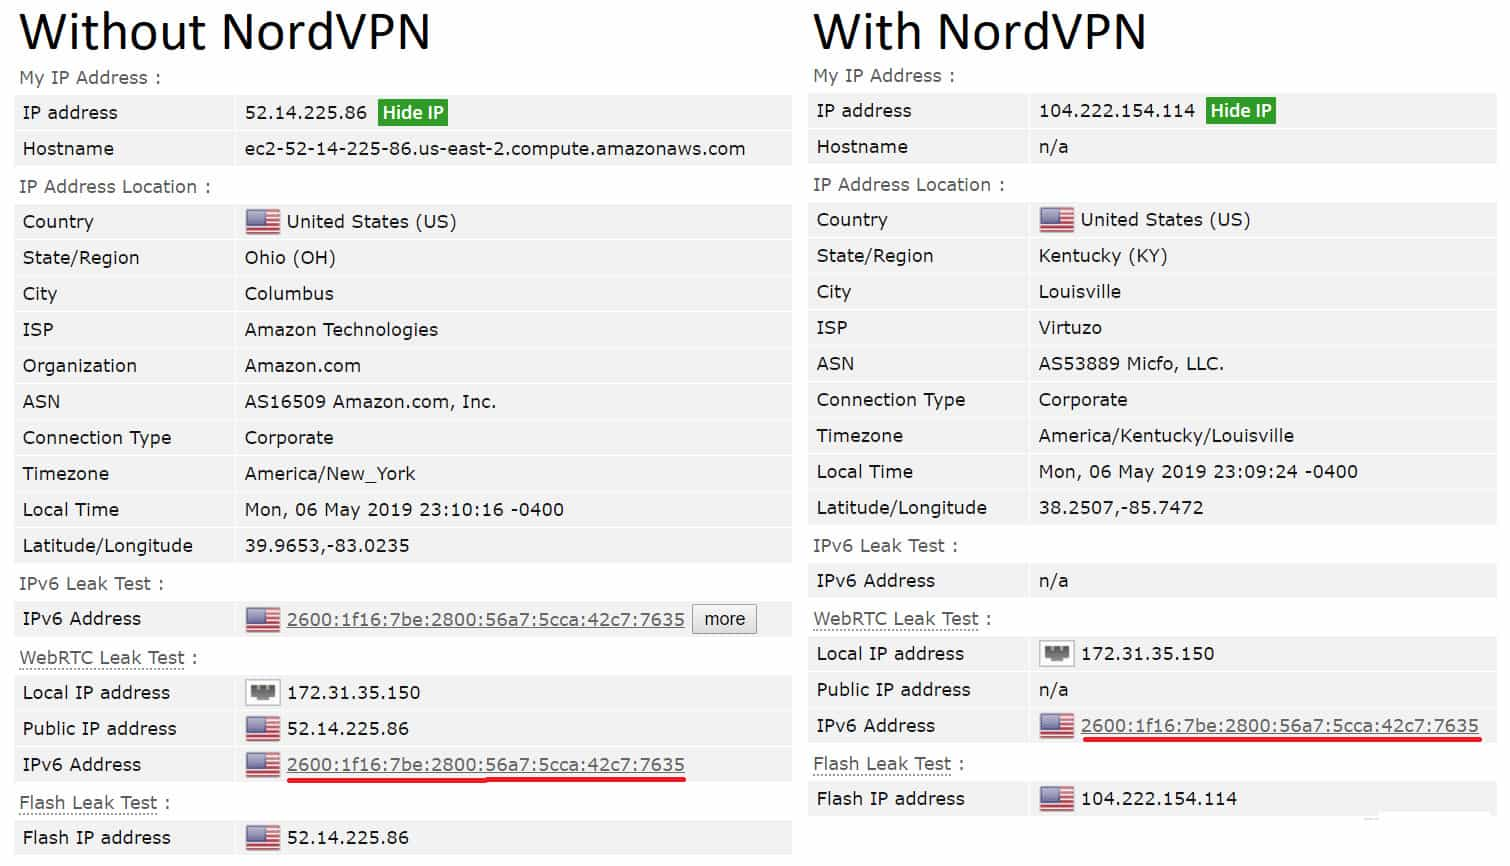 NordVPN Review 2019 - Does it Work With Netflix? (+ 75% Discount)